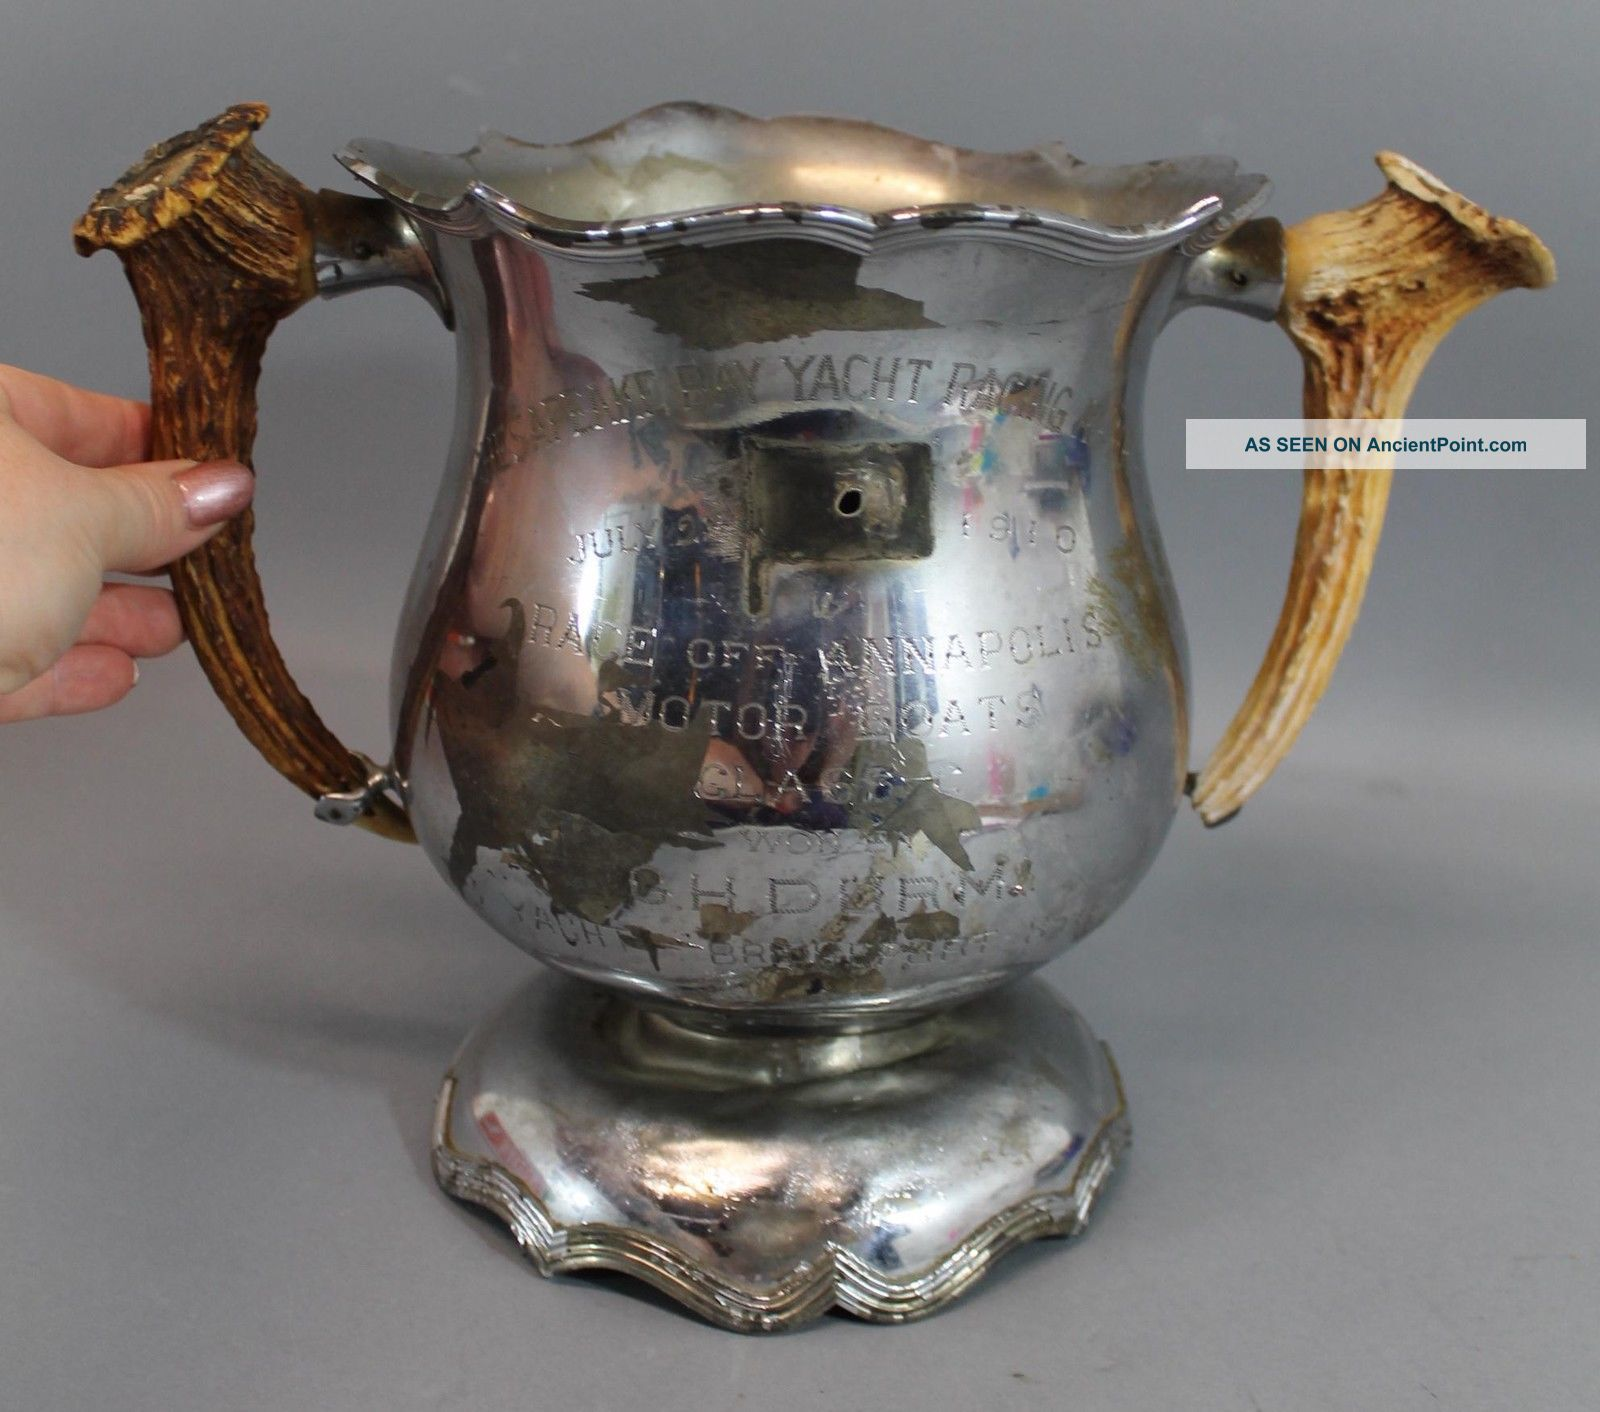 Antique 1910 Motorboat Race 1st Place Trophy,  Chesapeake Bay Yacht Racing Assoc Other Maritime Antiques photo